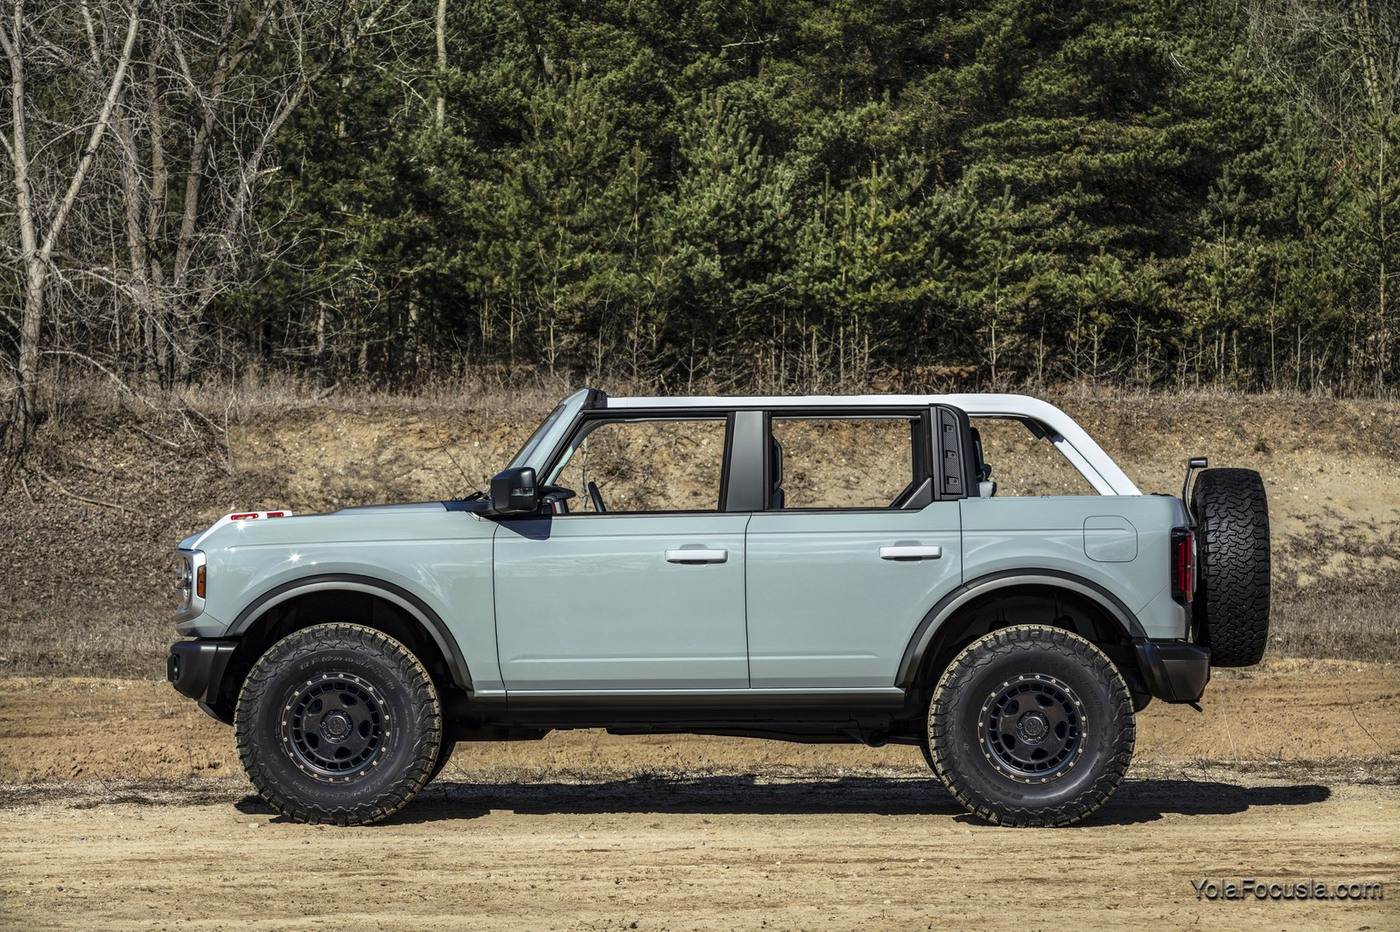 Bronco_4dr_features_02.jpg